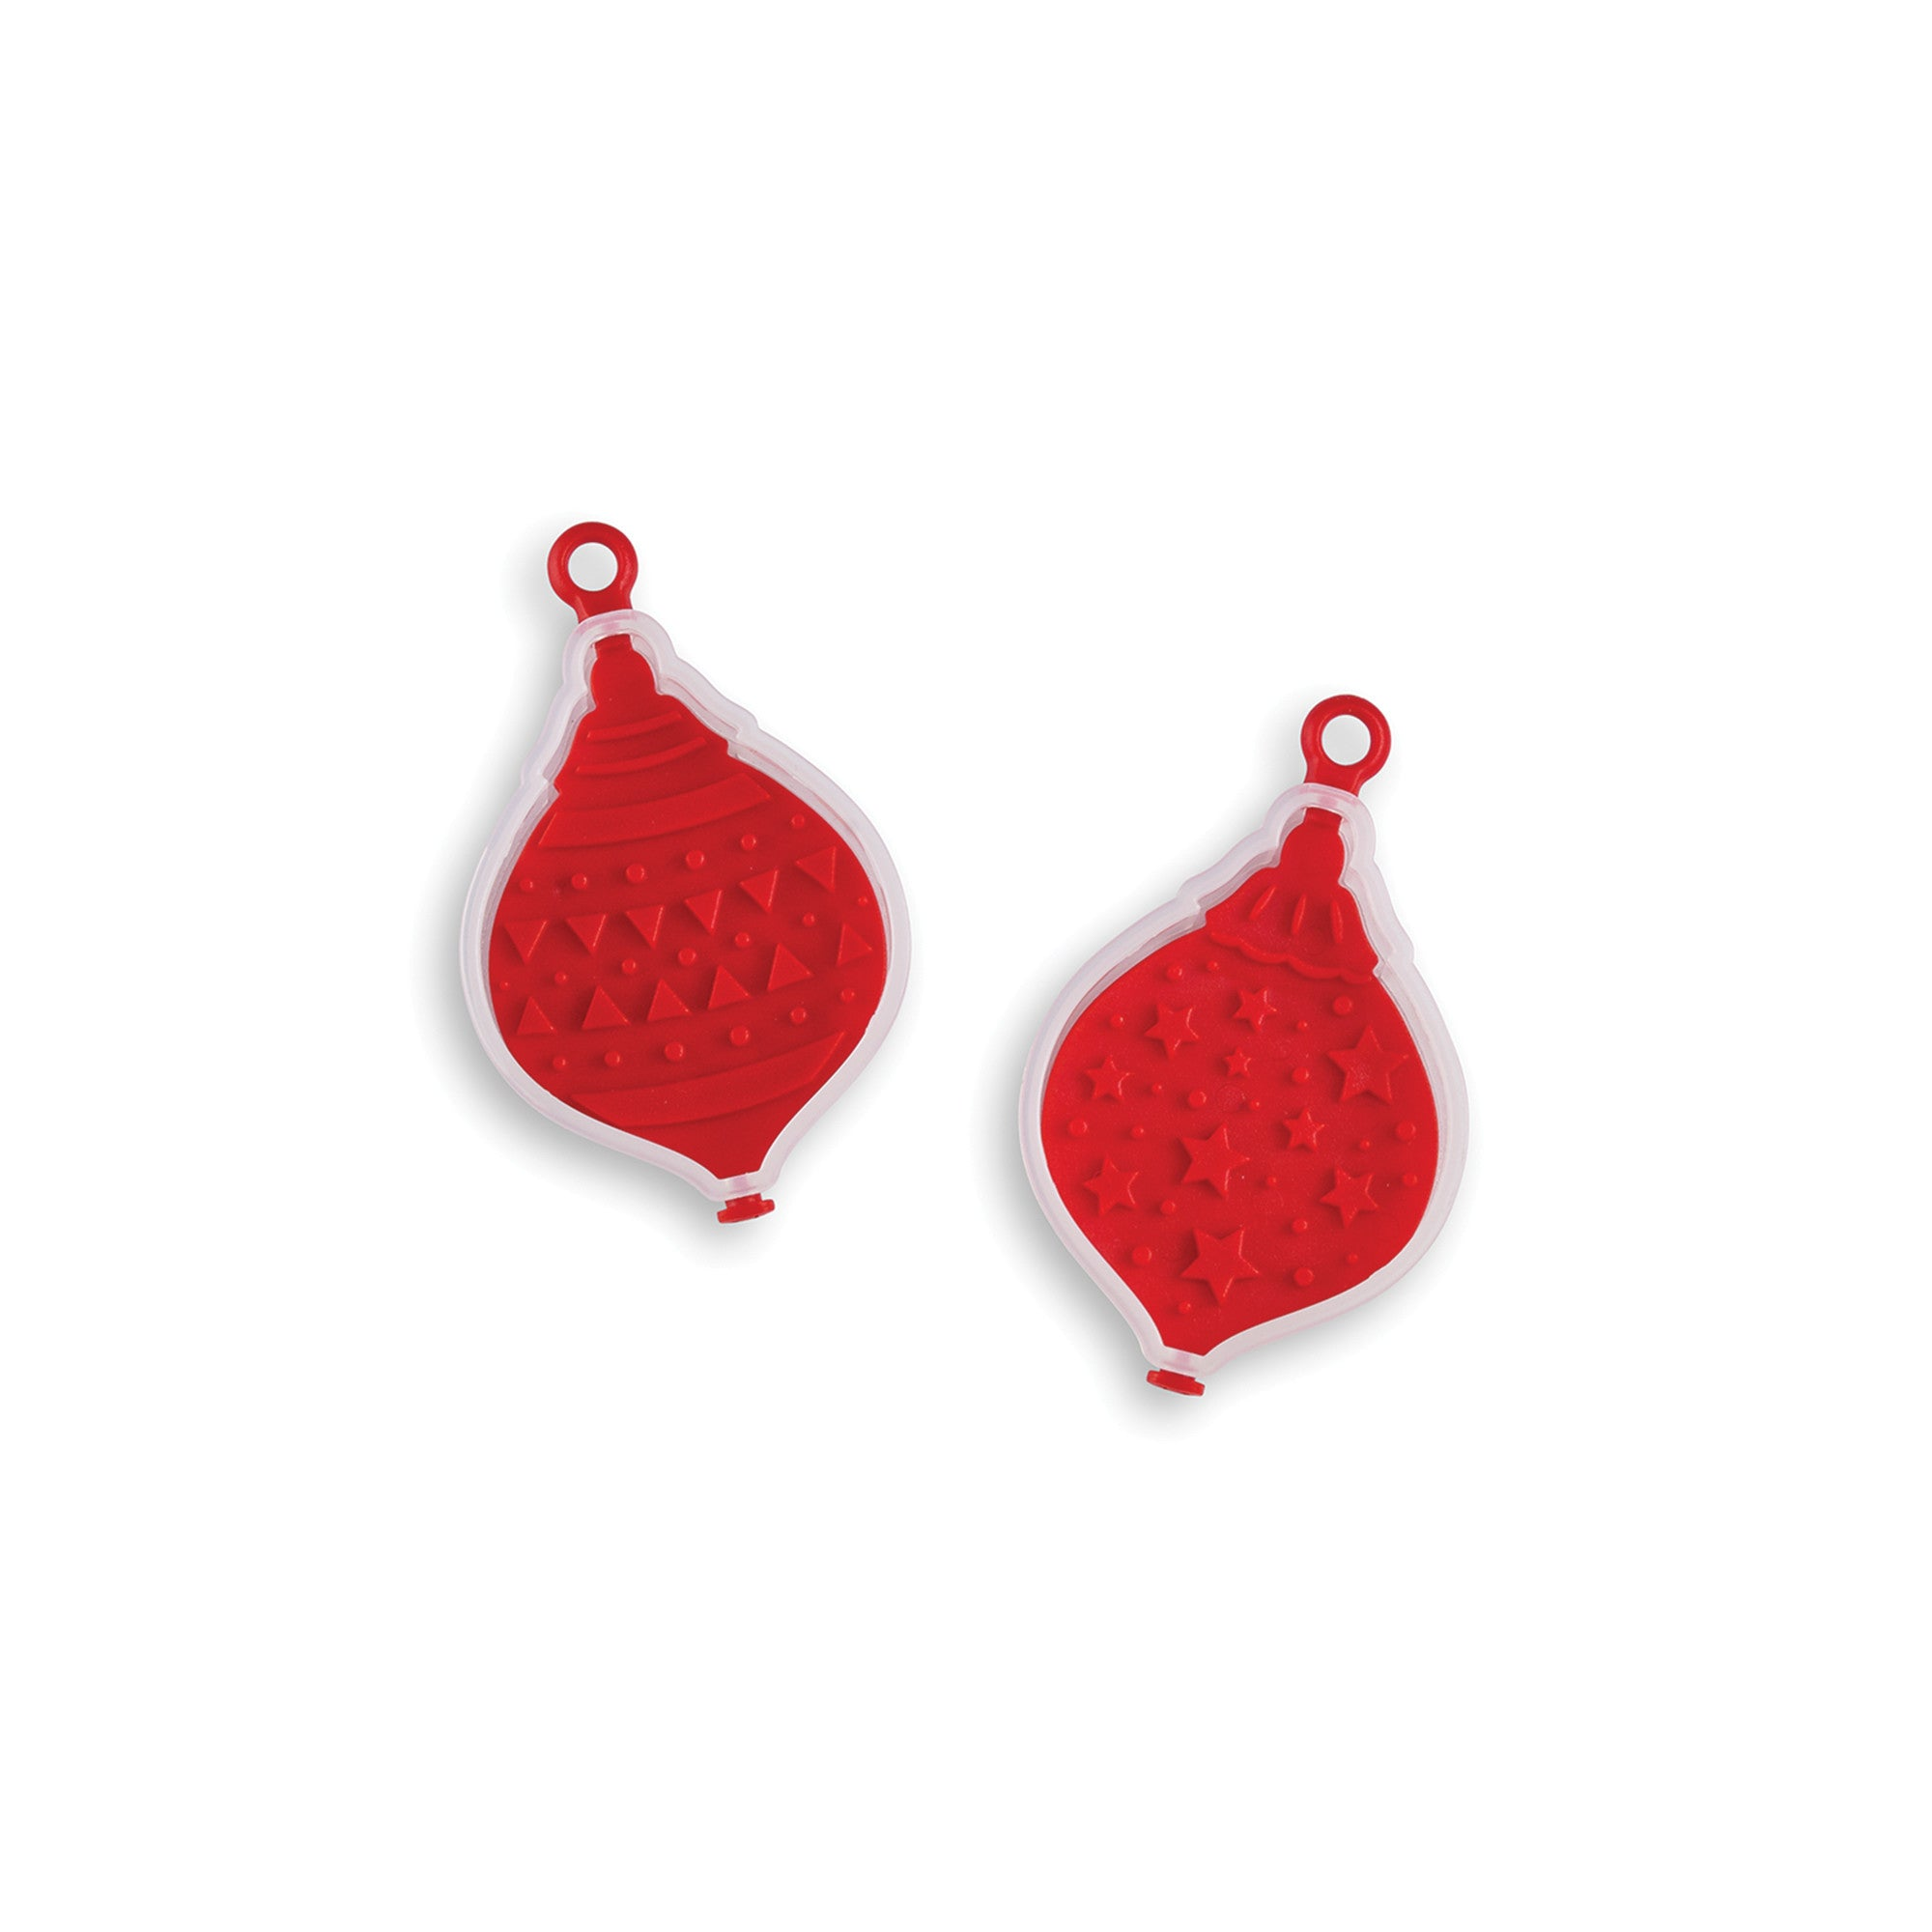 Christmas Ornament 3-in-1 Flip & Stamp Cookie Cutter